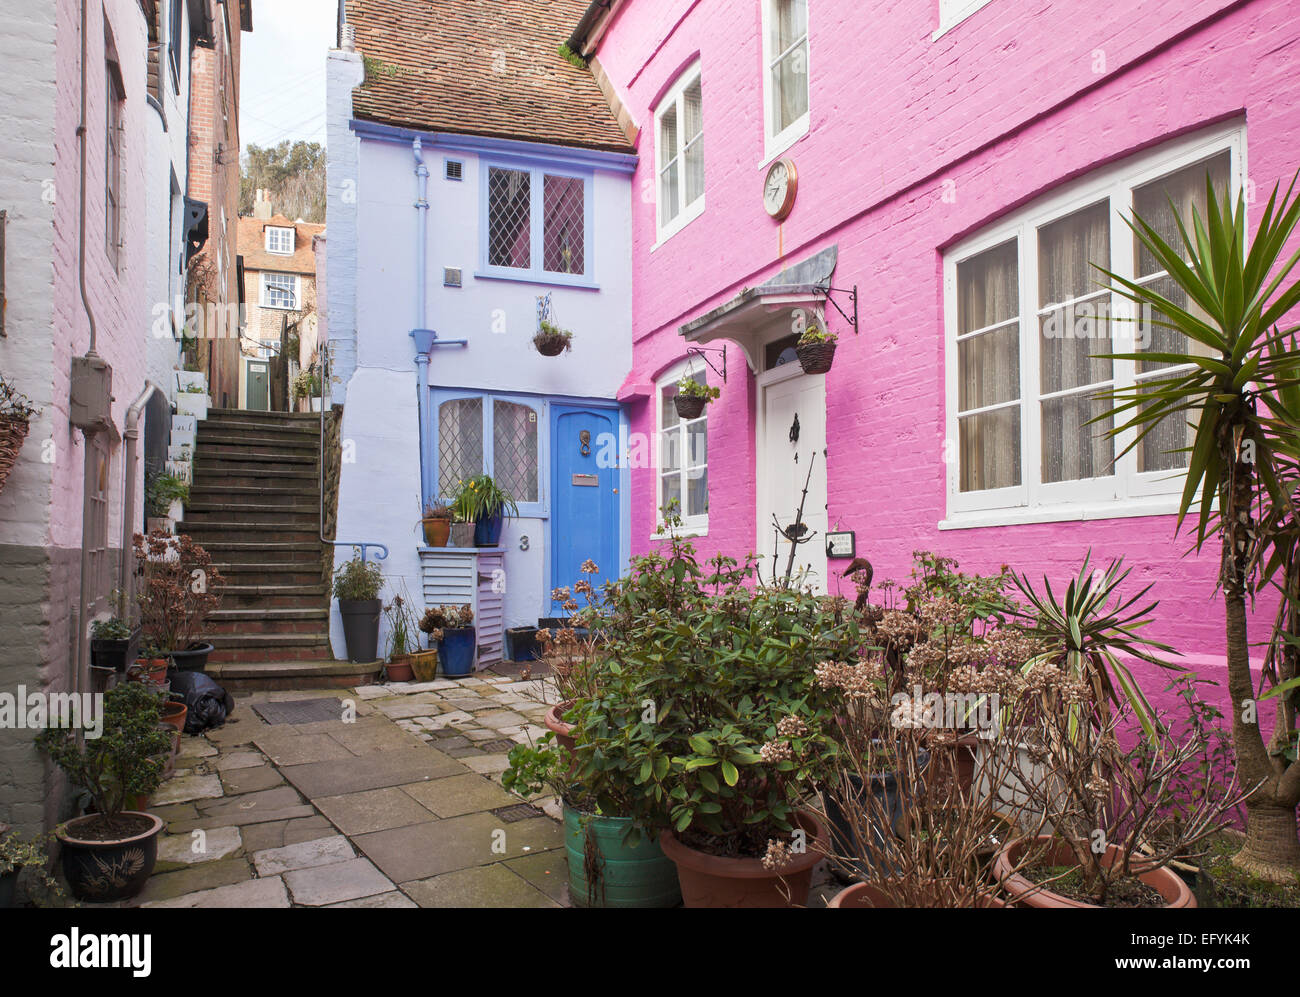 The narrow alleys of Hastings old town. - Stock Image